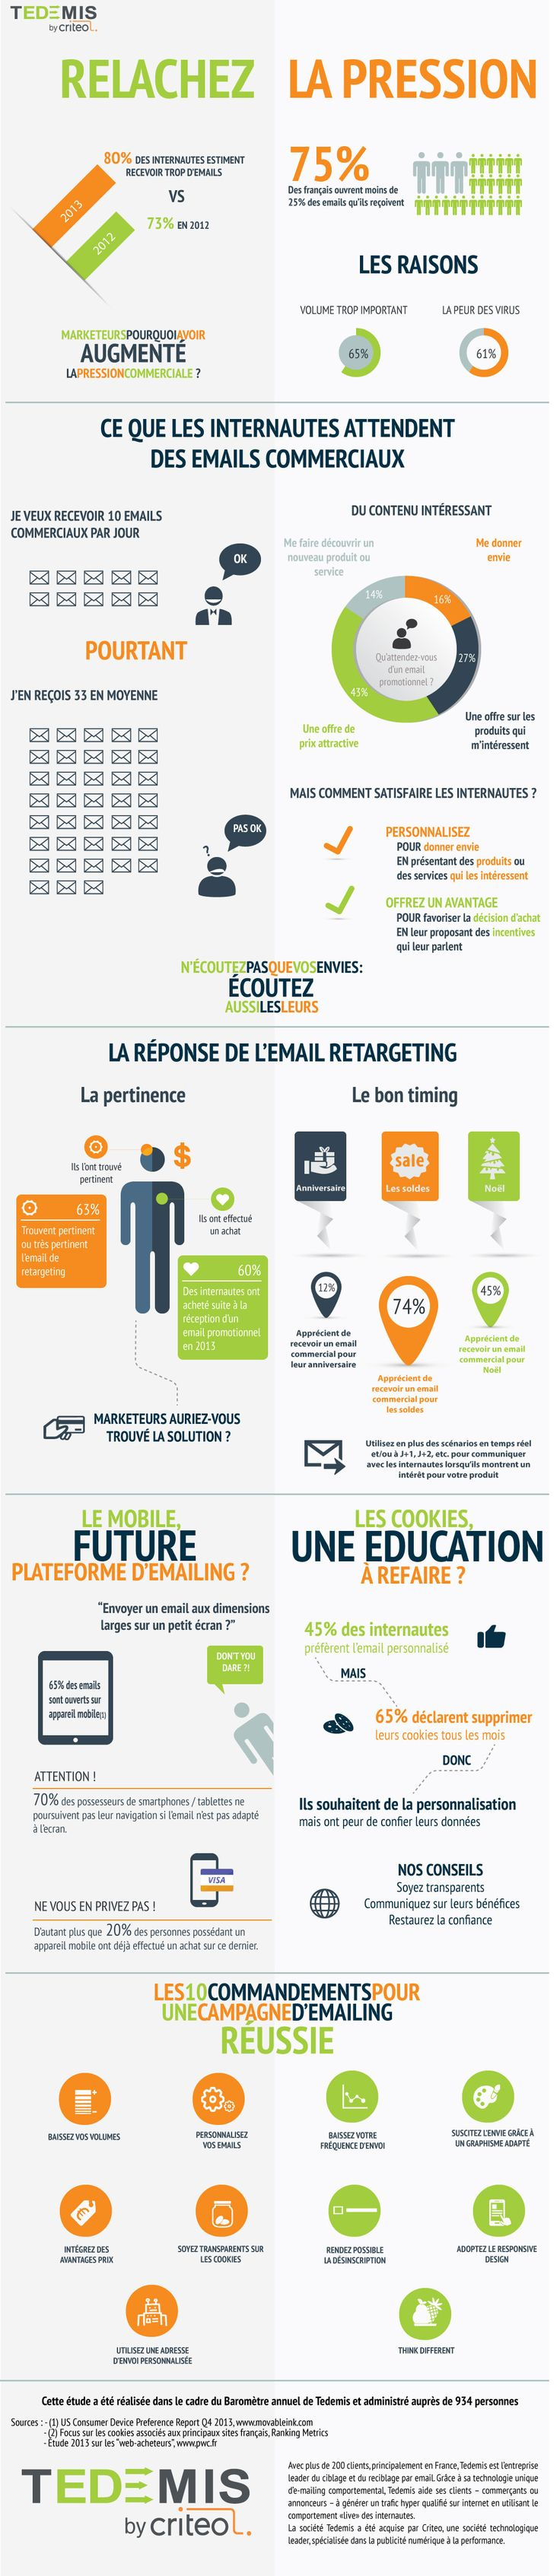 Emailing et pression marketing via Tedemis